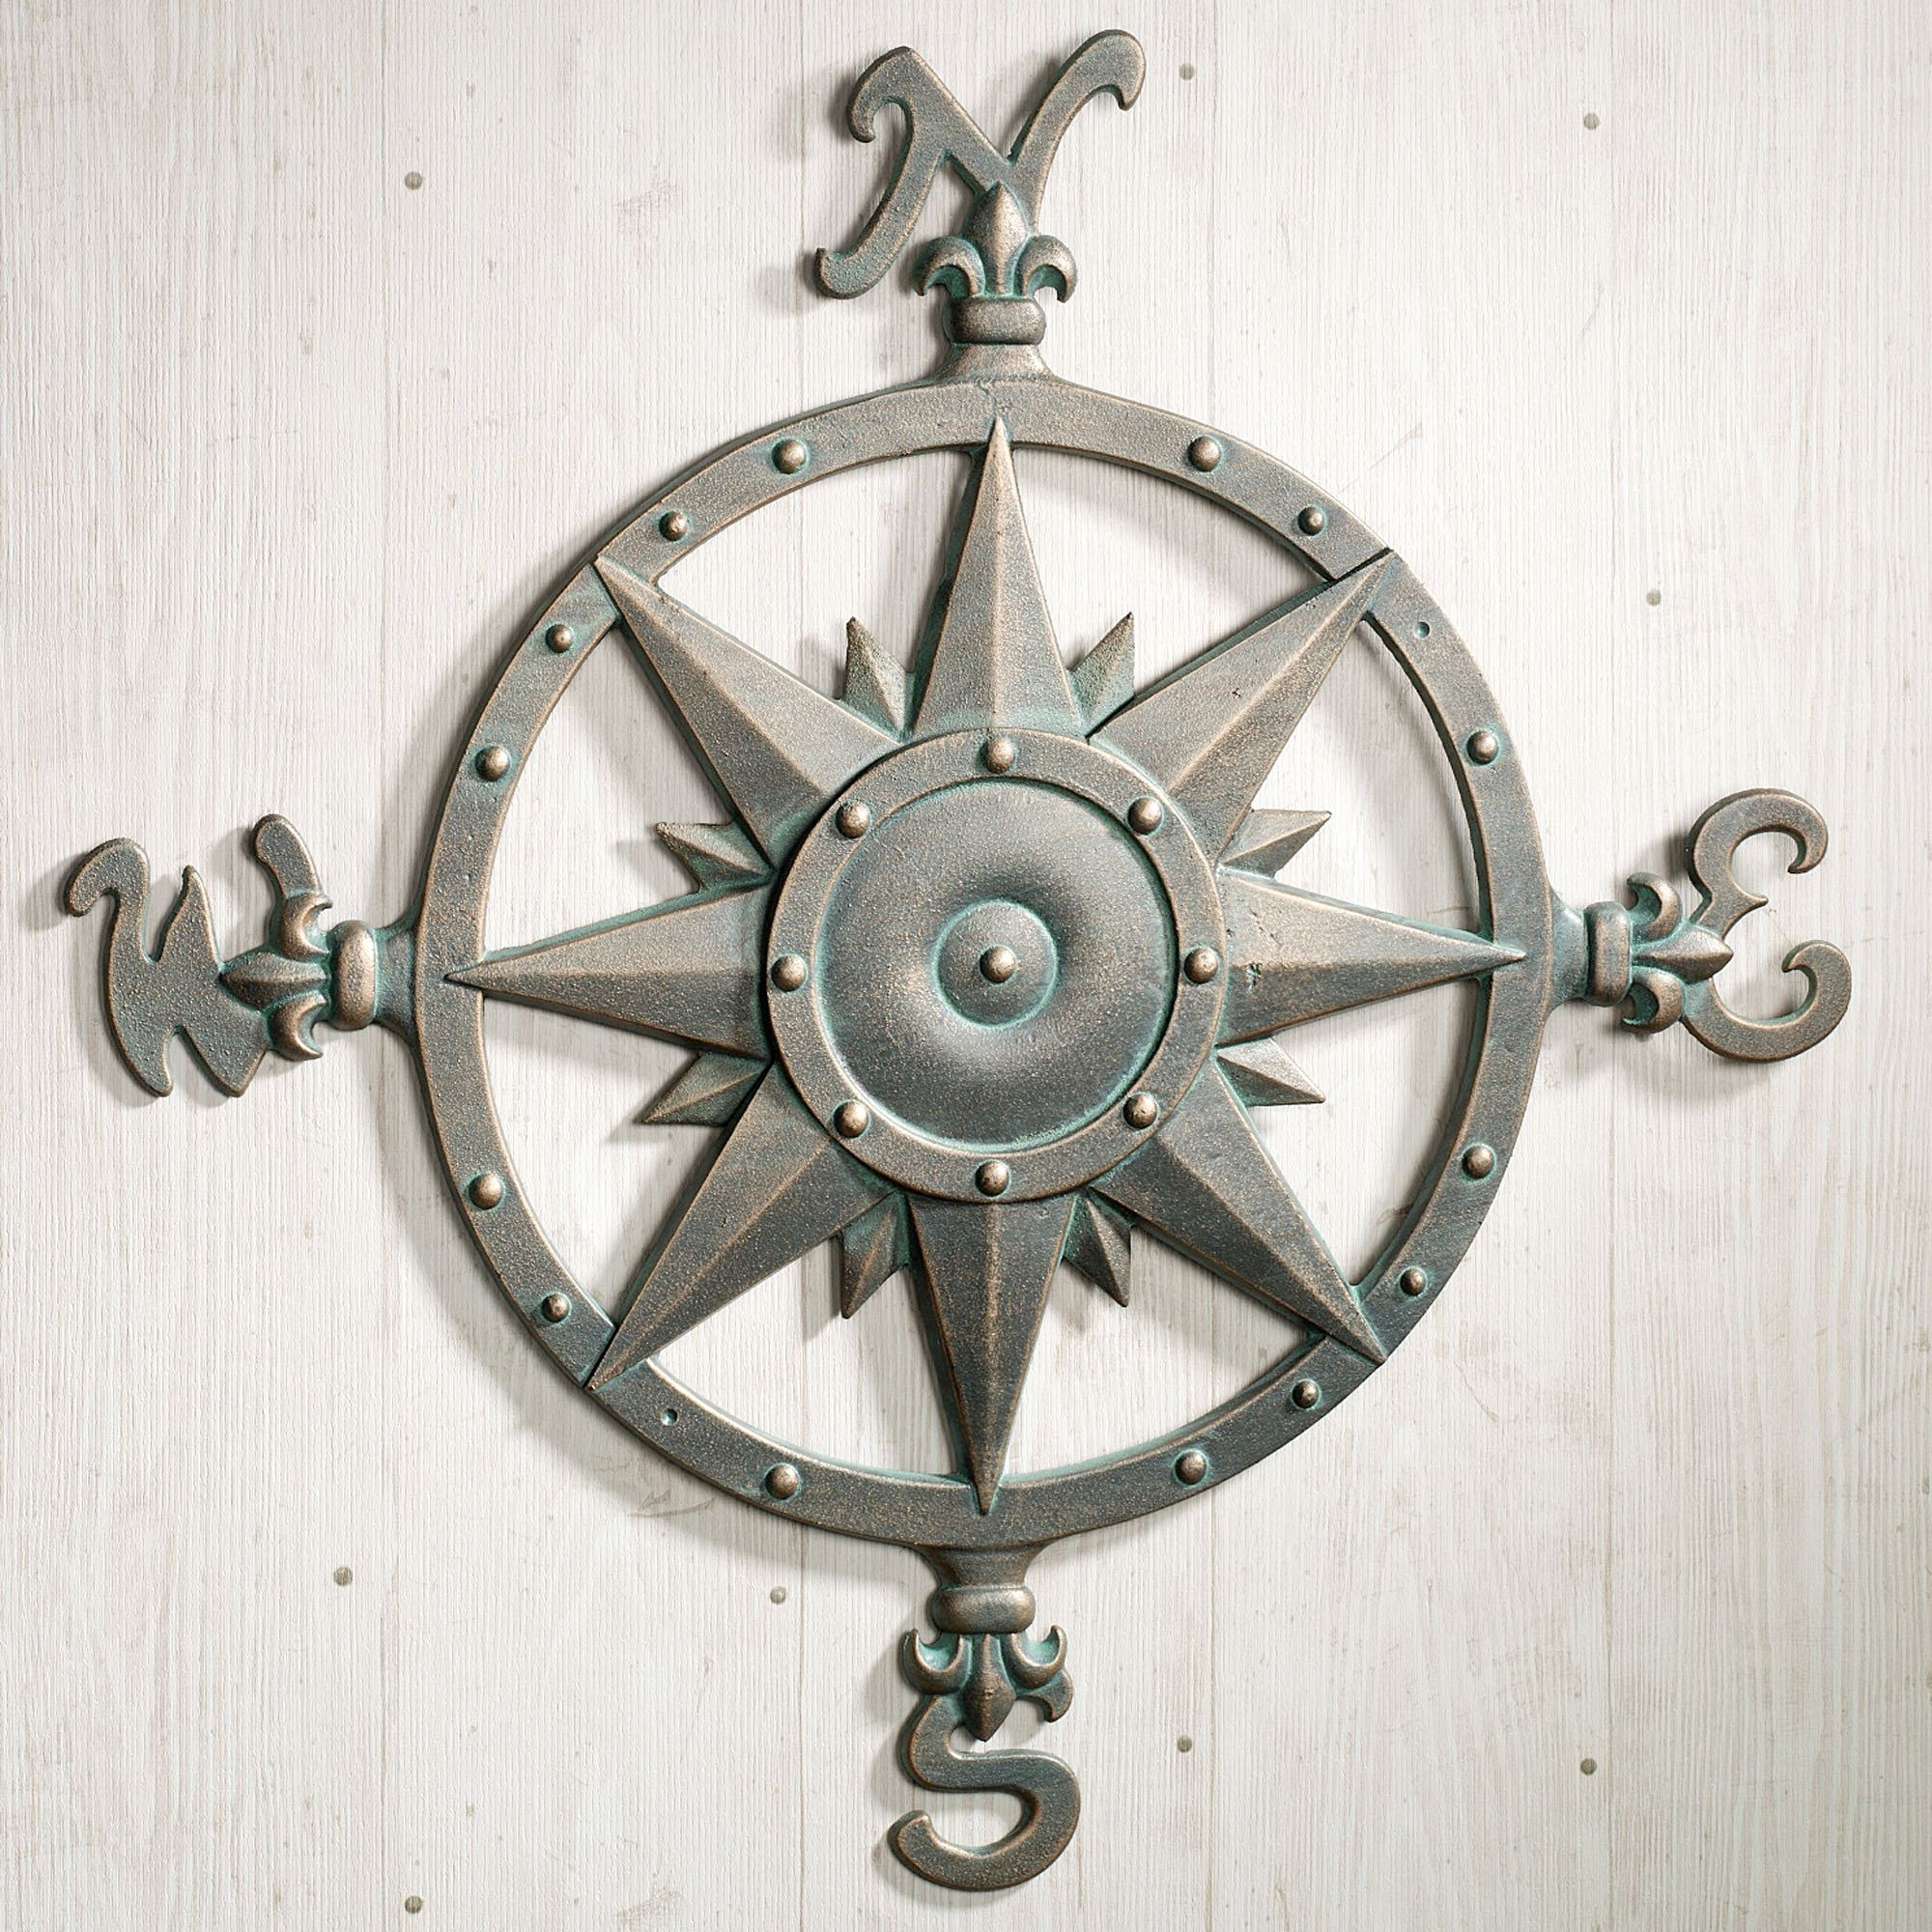 Fashionable Indoor Outdoor Nautical Compass Metal Wall Art With Regard To Round Compass Wall Decor (View 10 of 20)